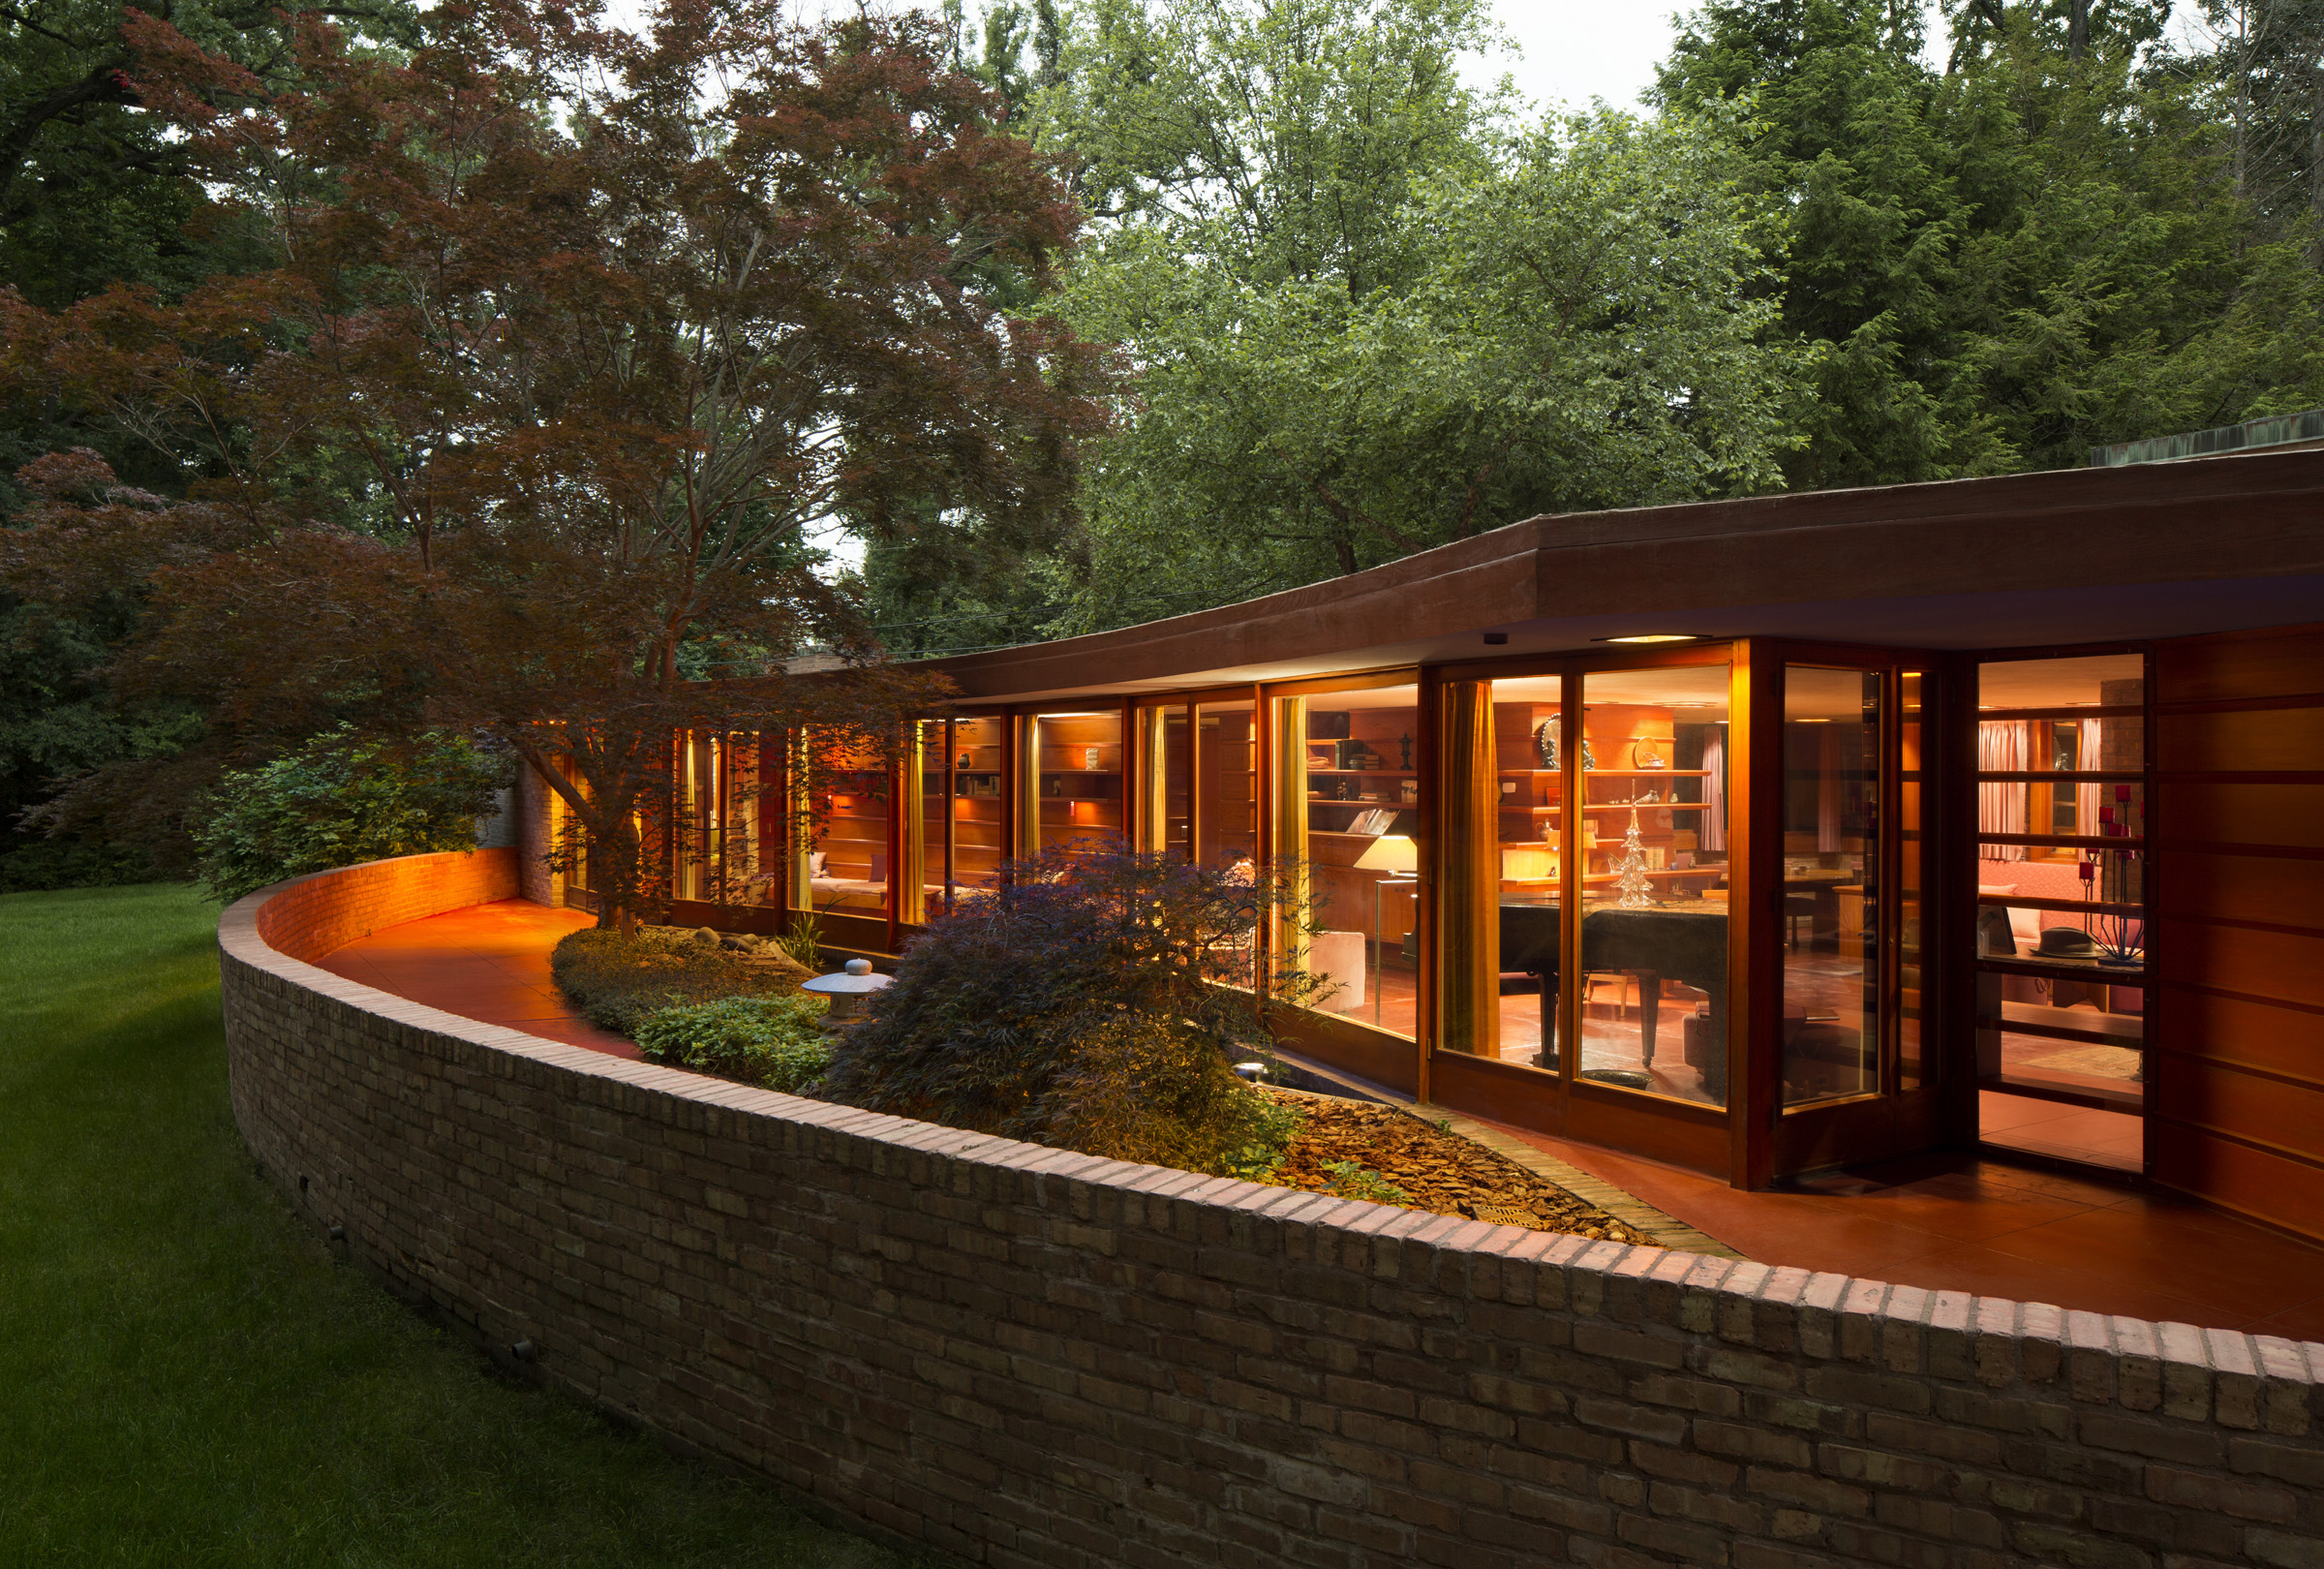 Exterior of the Frank Lloyd Wright house built with a design for disabilities